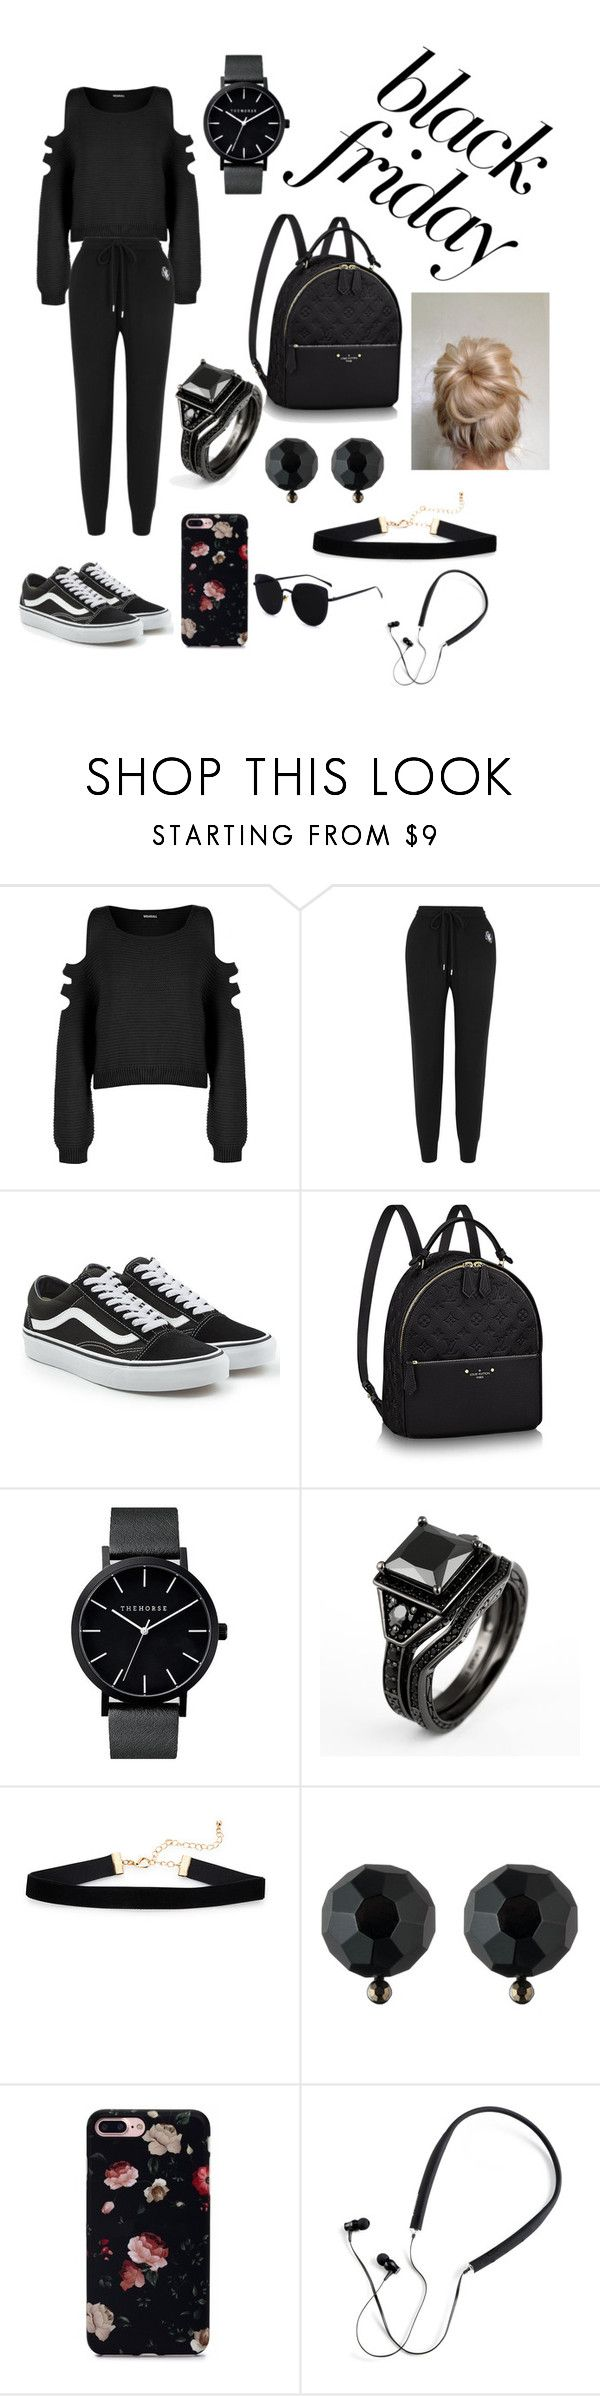 """black Friday"" by gabiethao ❤ liked on Polyvore featuring WearAll, Markus Lupfer, Vans, Ralph Lauren and Polaroid"